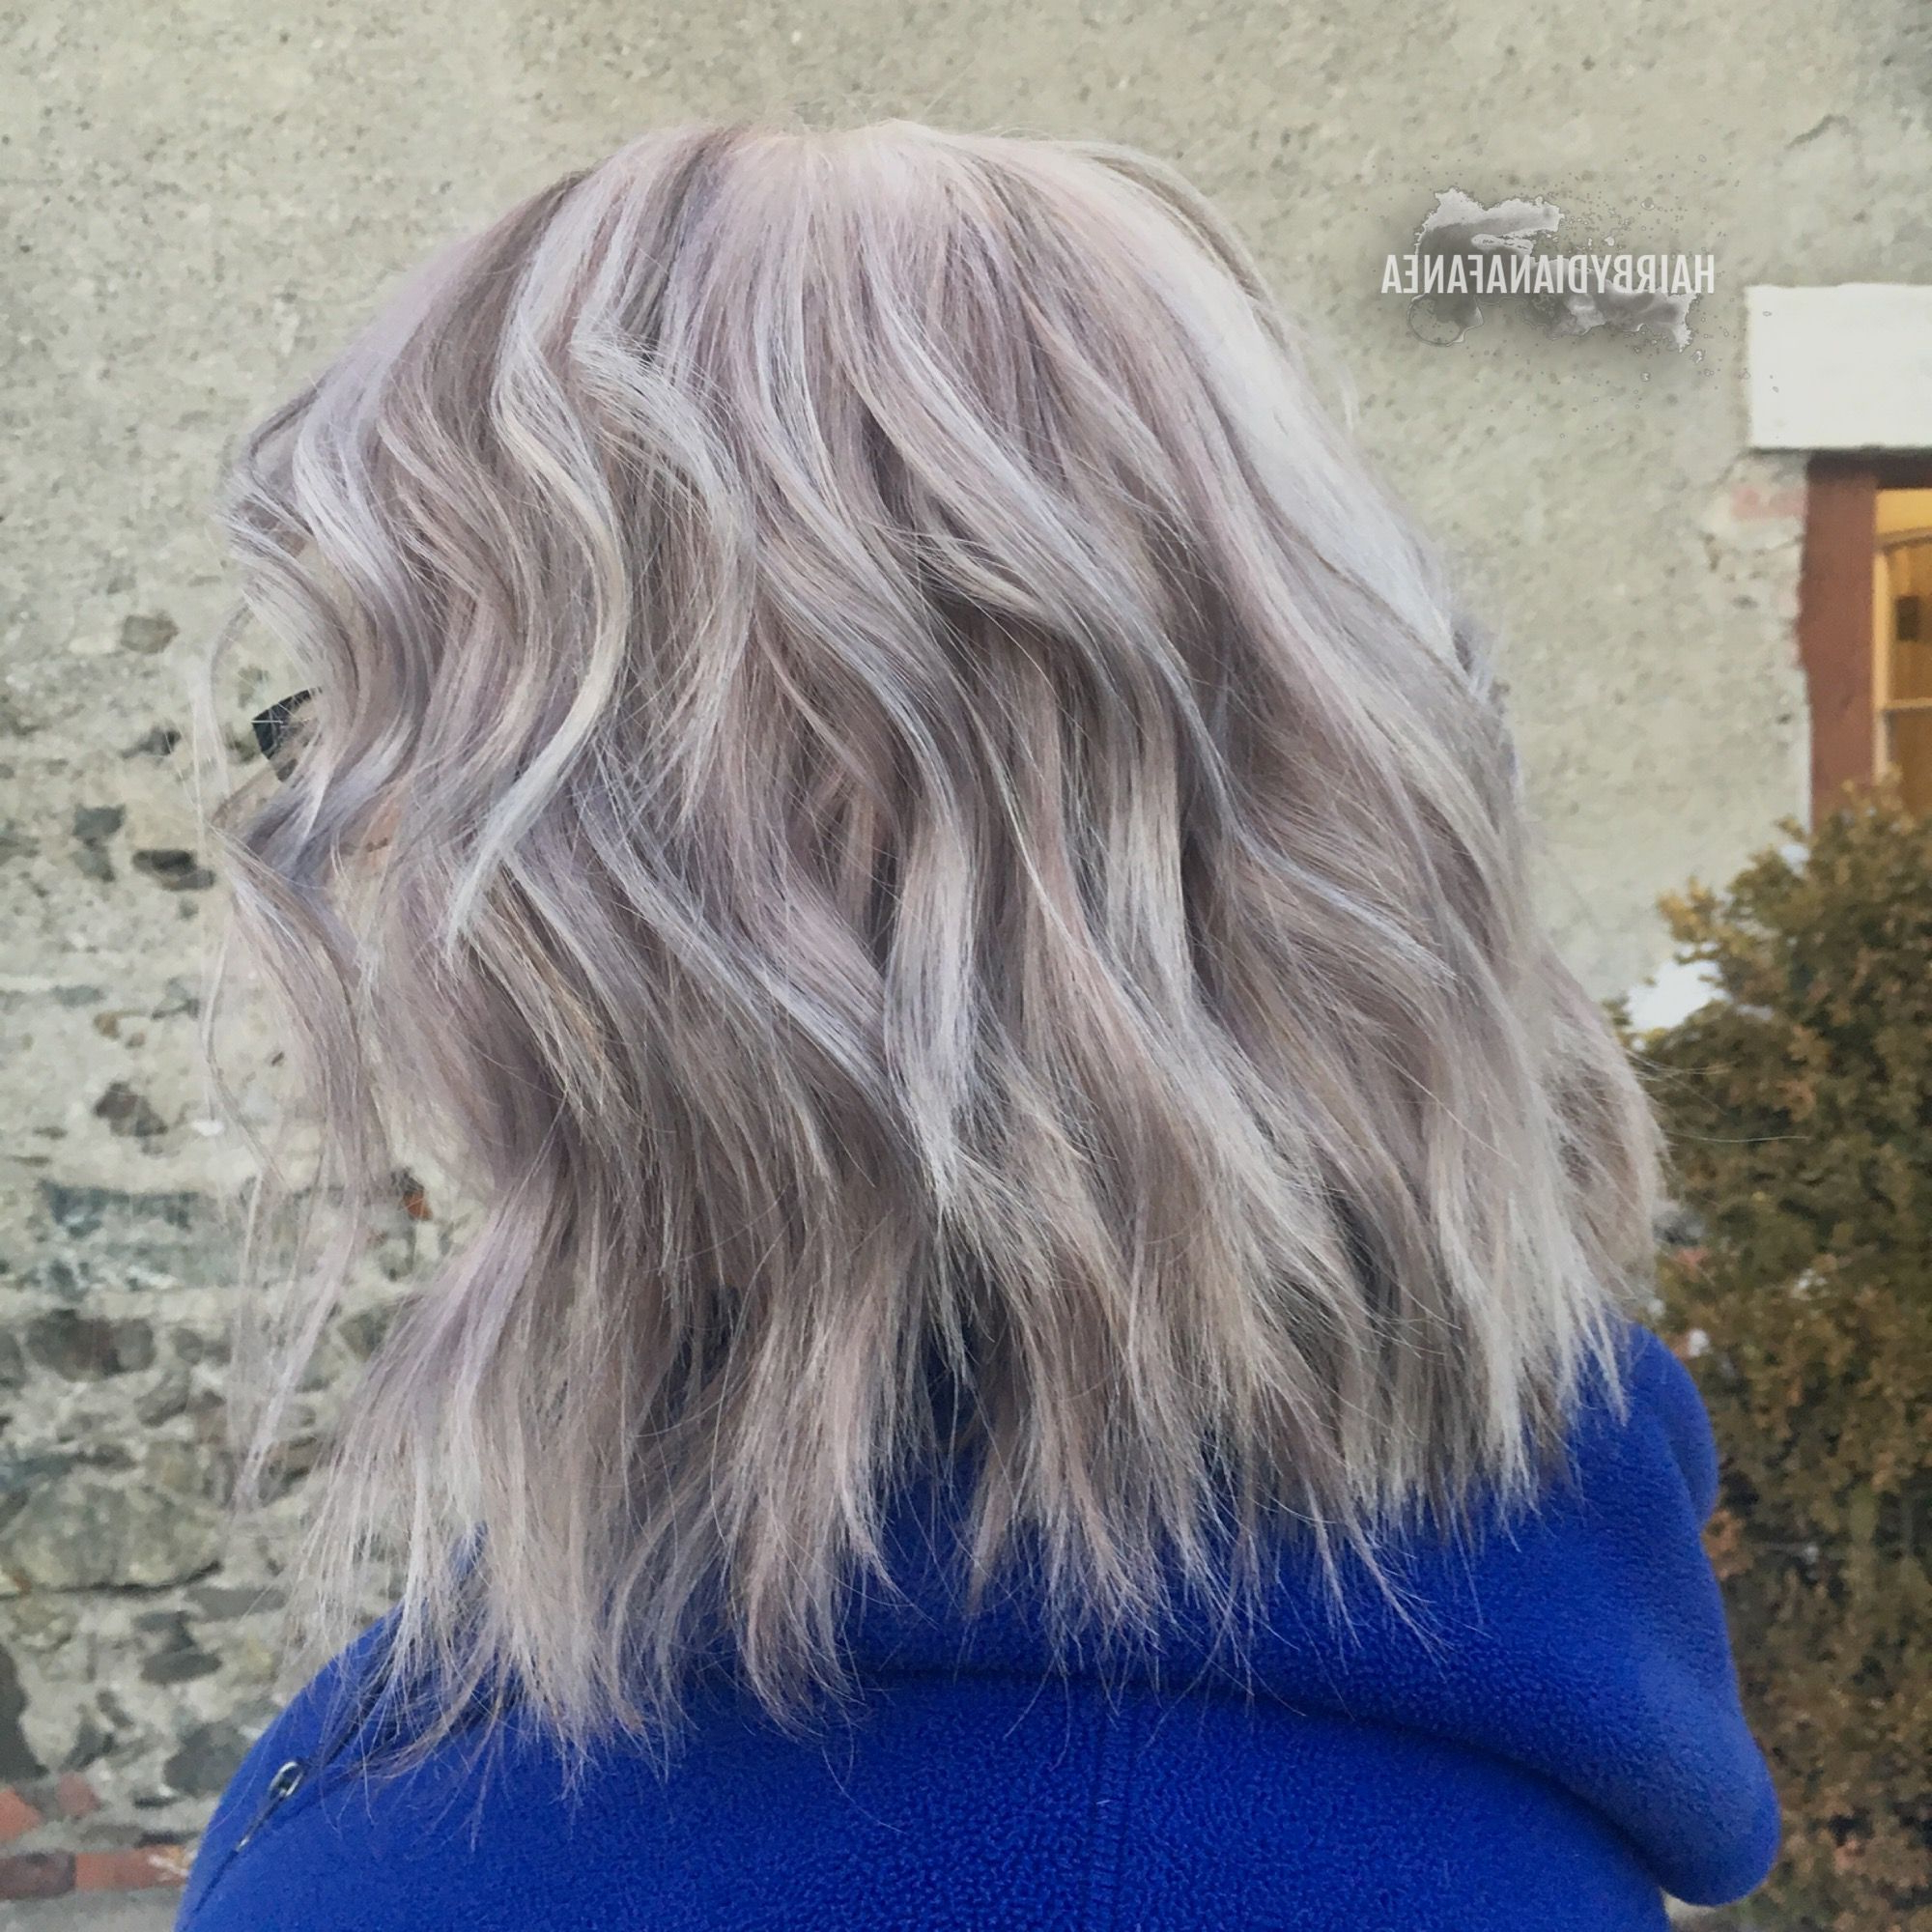 2019 Loose Layers Hairstyles With Silver Highlights Regarding Silver Hair Platinum Blonde Ash Blonde Beach Waves Blonde Highlights (View 9 of 20)